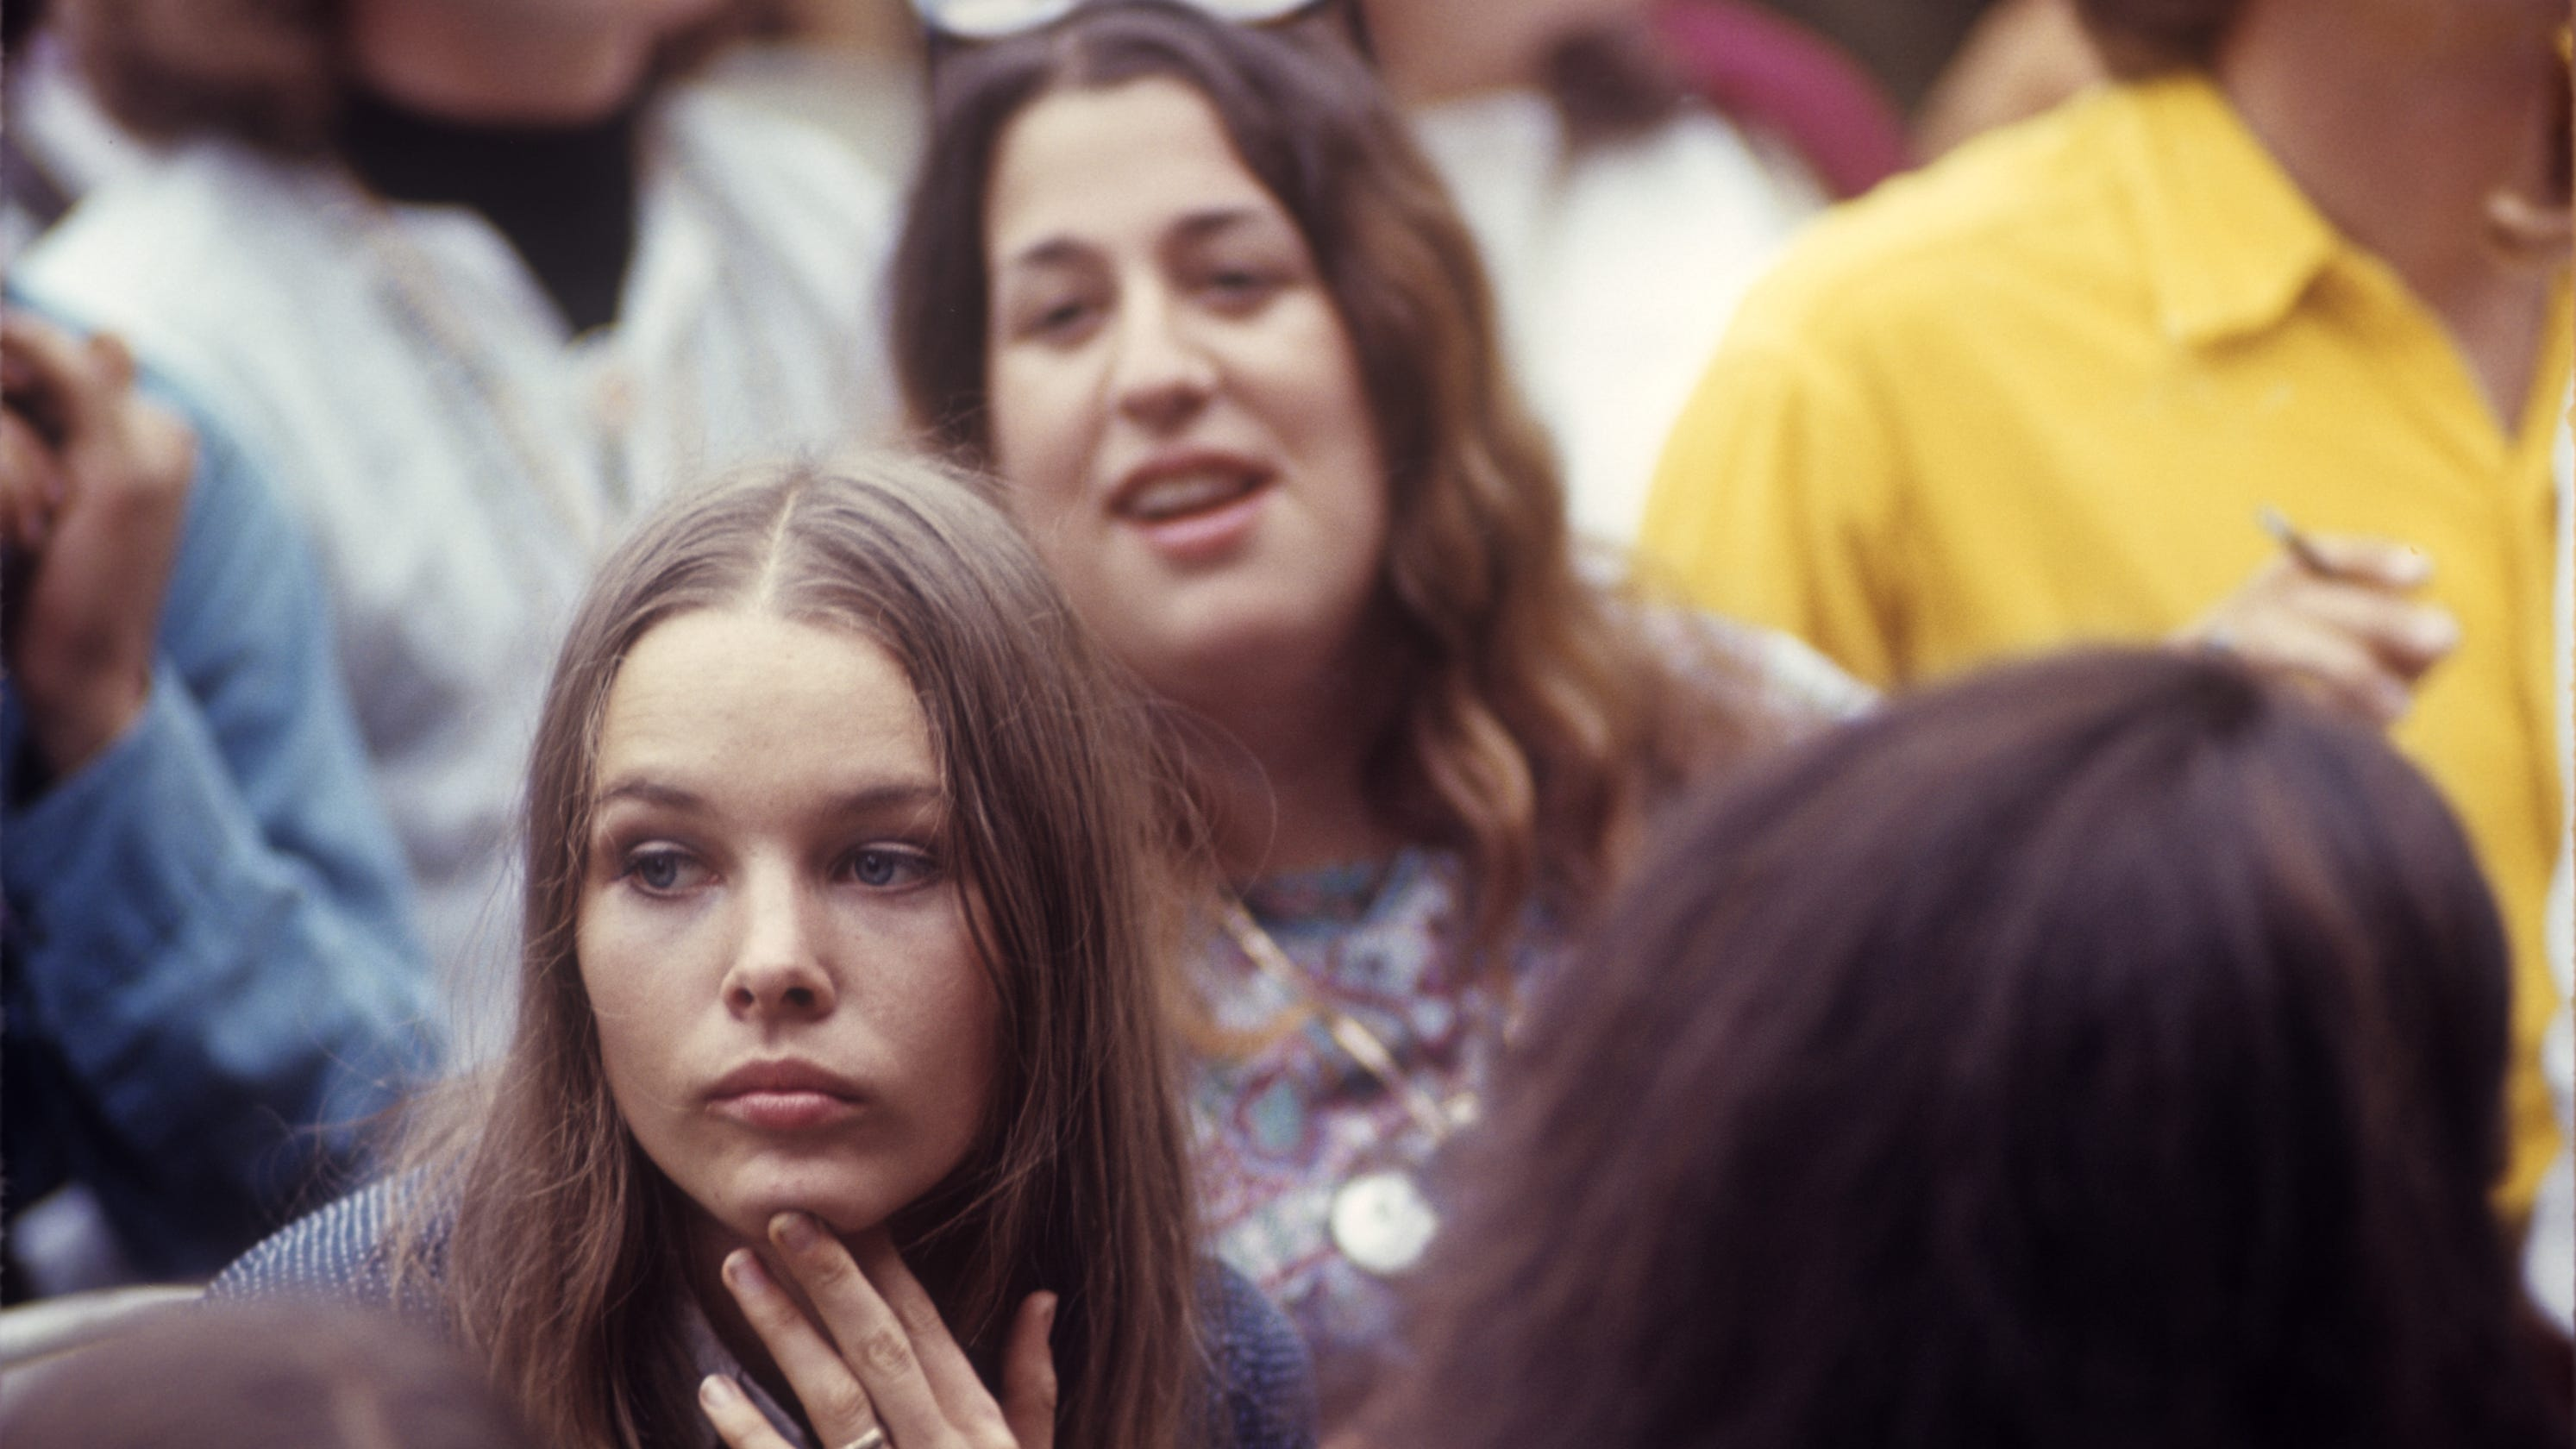 'Laurel Canyon': Mamas and the Papas singer on the 'very big highs and lows' of '60s music scene